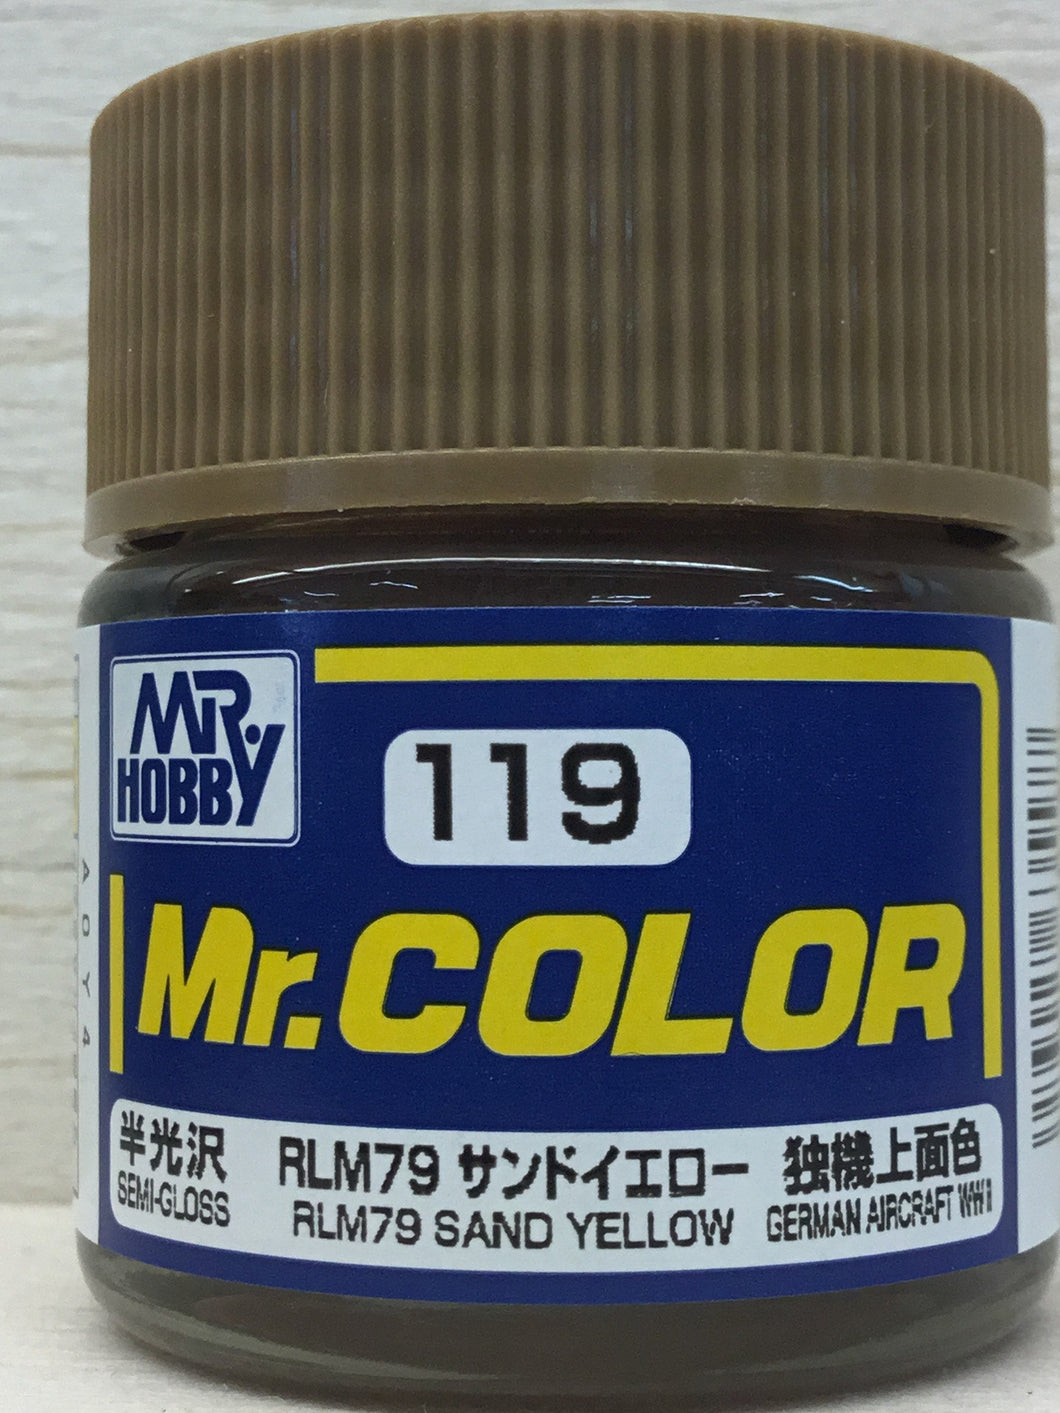 GUNZE MR COLOR C119 SEMI GLOSS RLM 79 SAND YELLOW